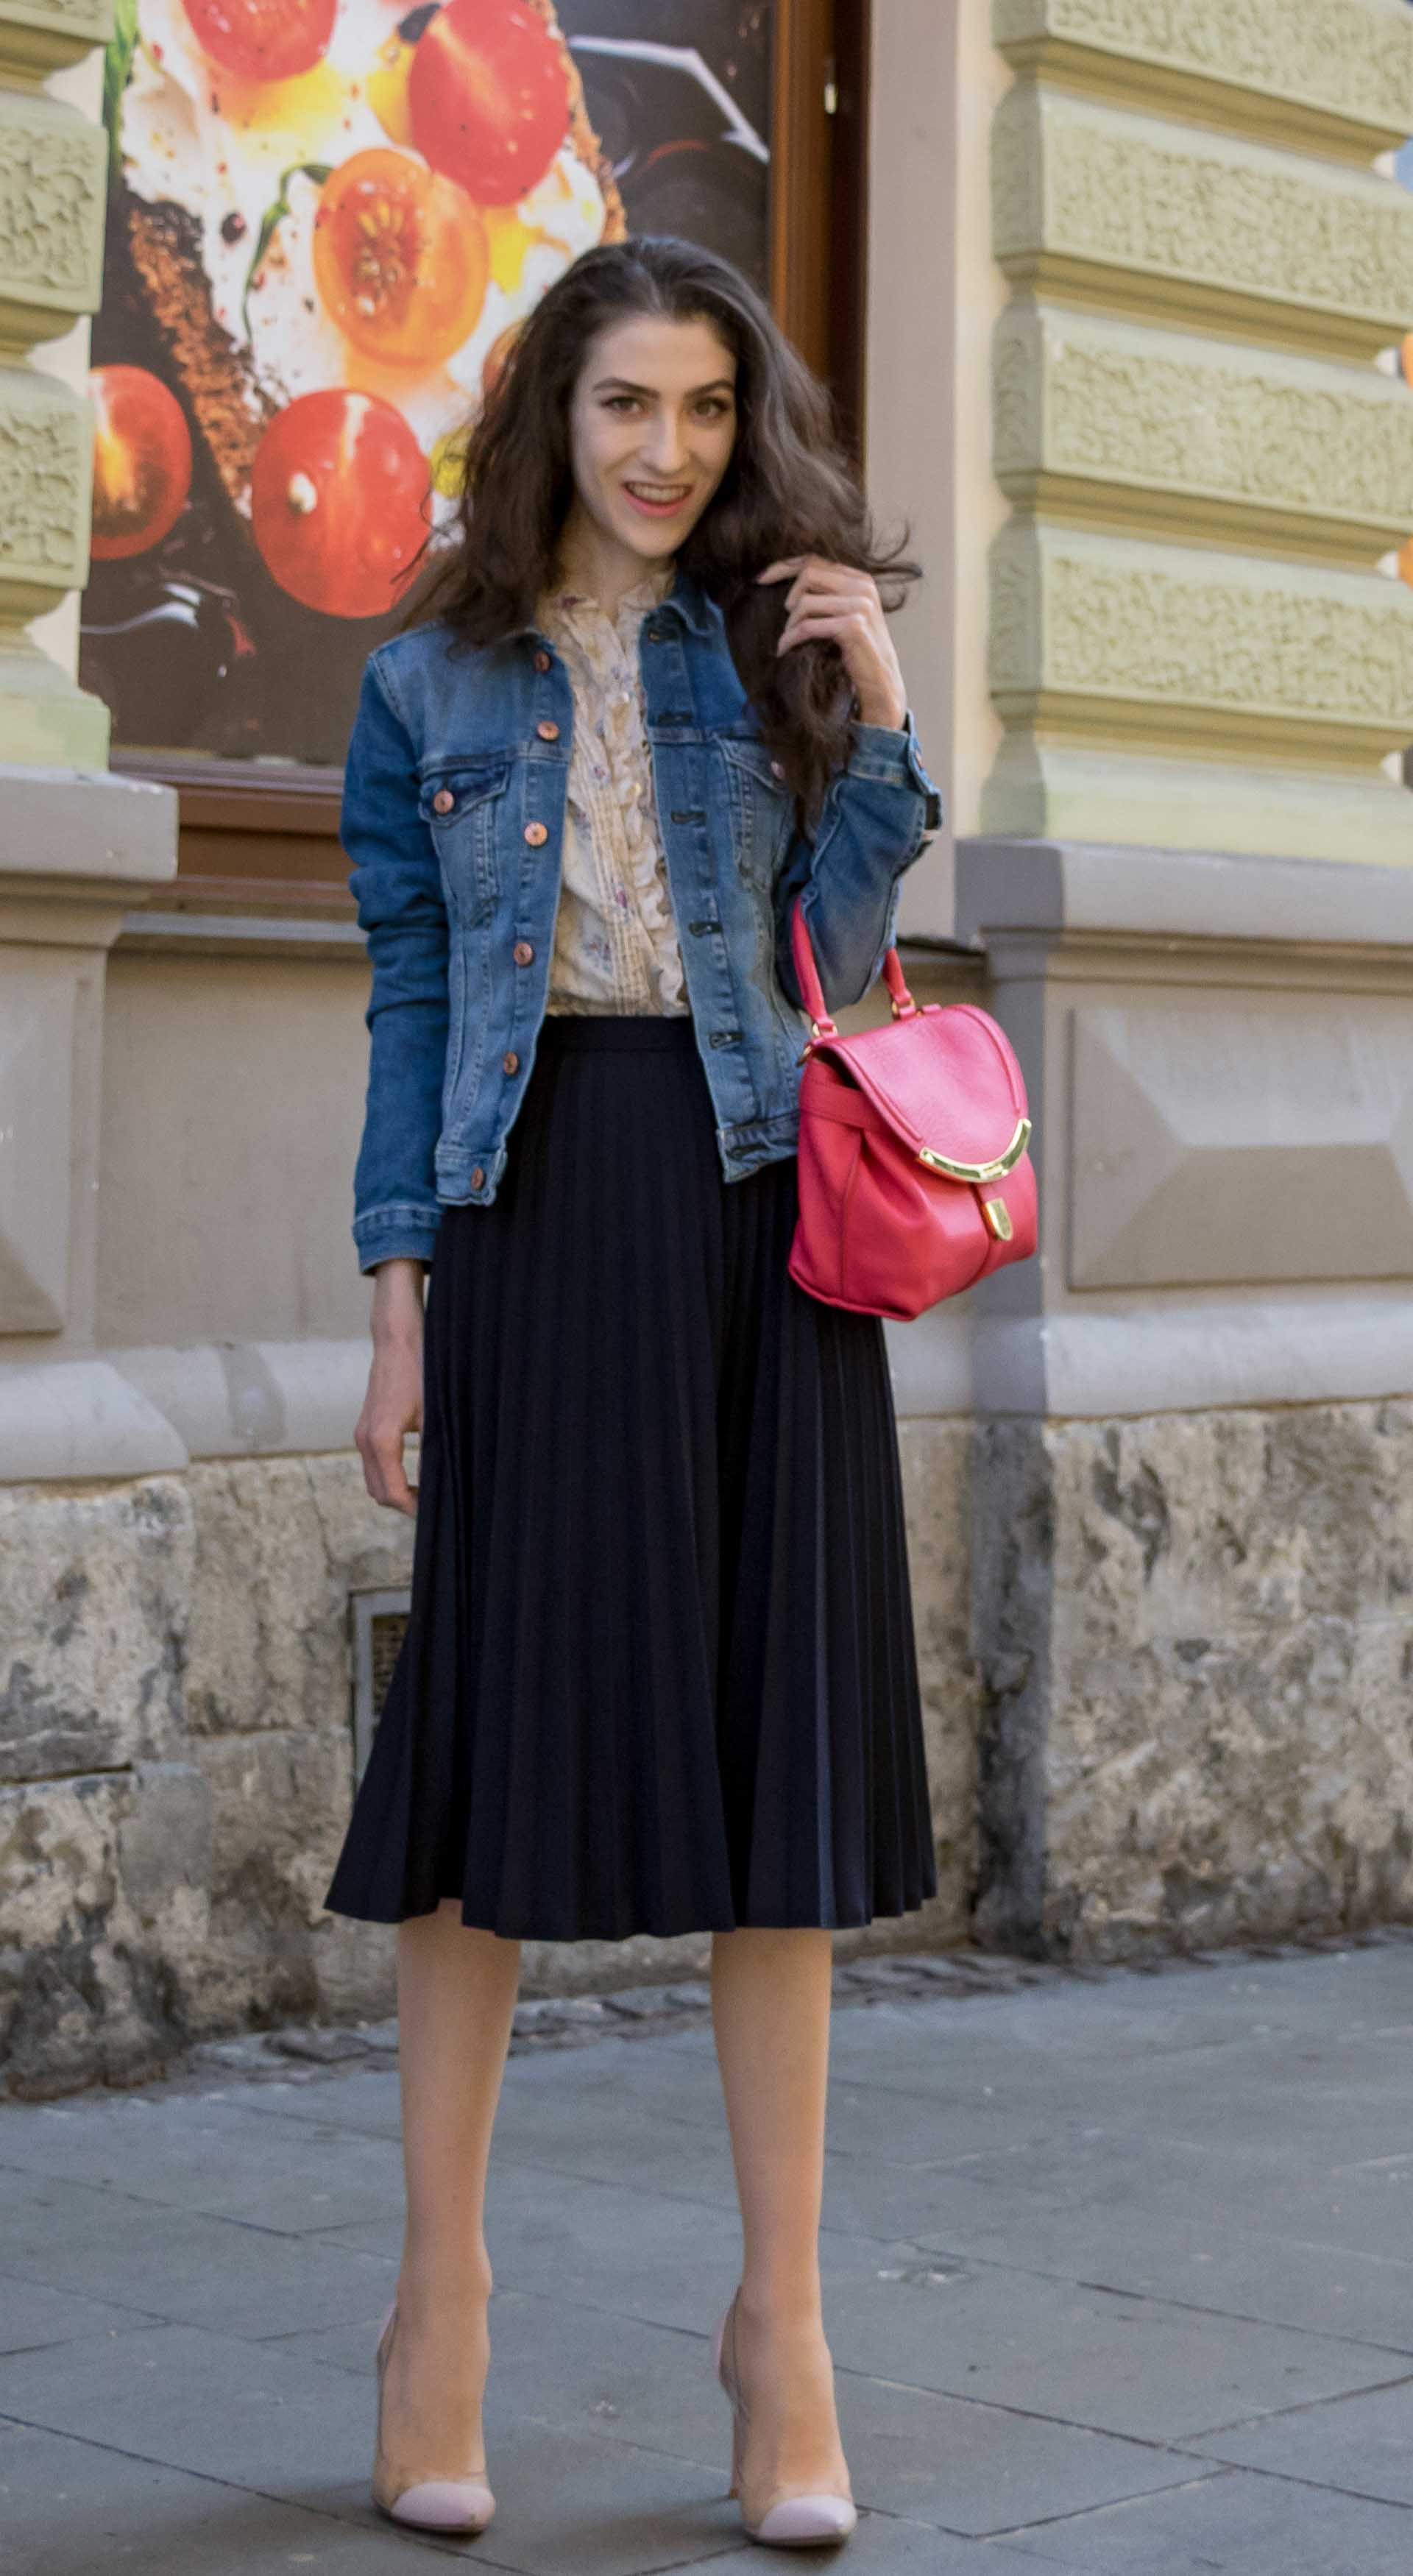 Veronika Lipar Fashion Blogger of Brunette from Wall Street dressed in H&M denim jacket, floral blouse, midi pleated skirt, Gianvito Rossi plexi pumps, pink top handle bag while standing on the street in Ljubljana